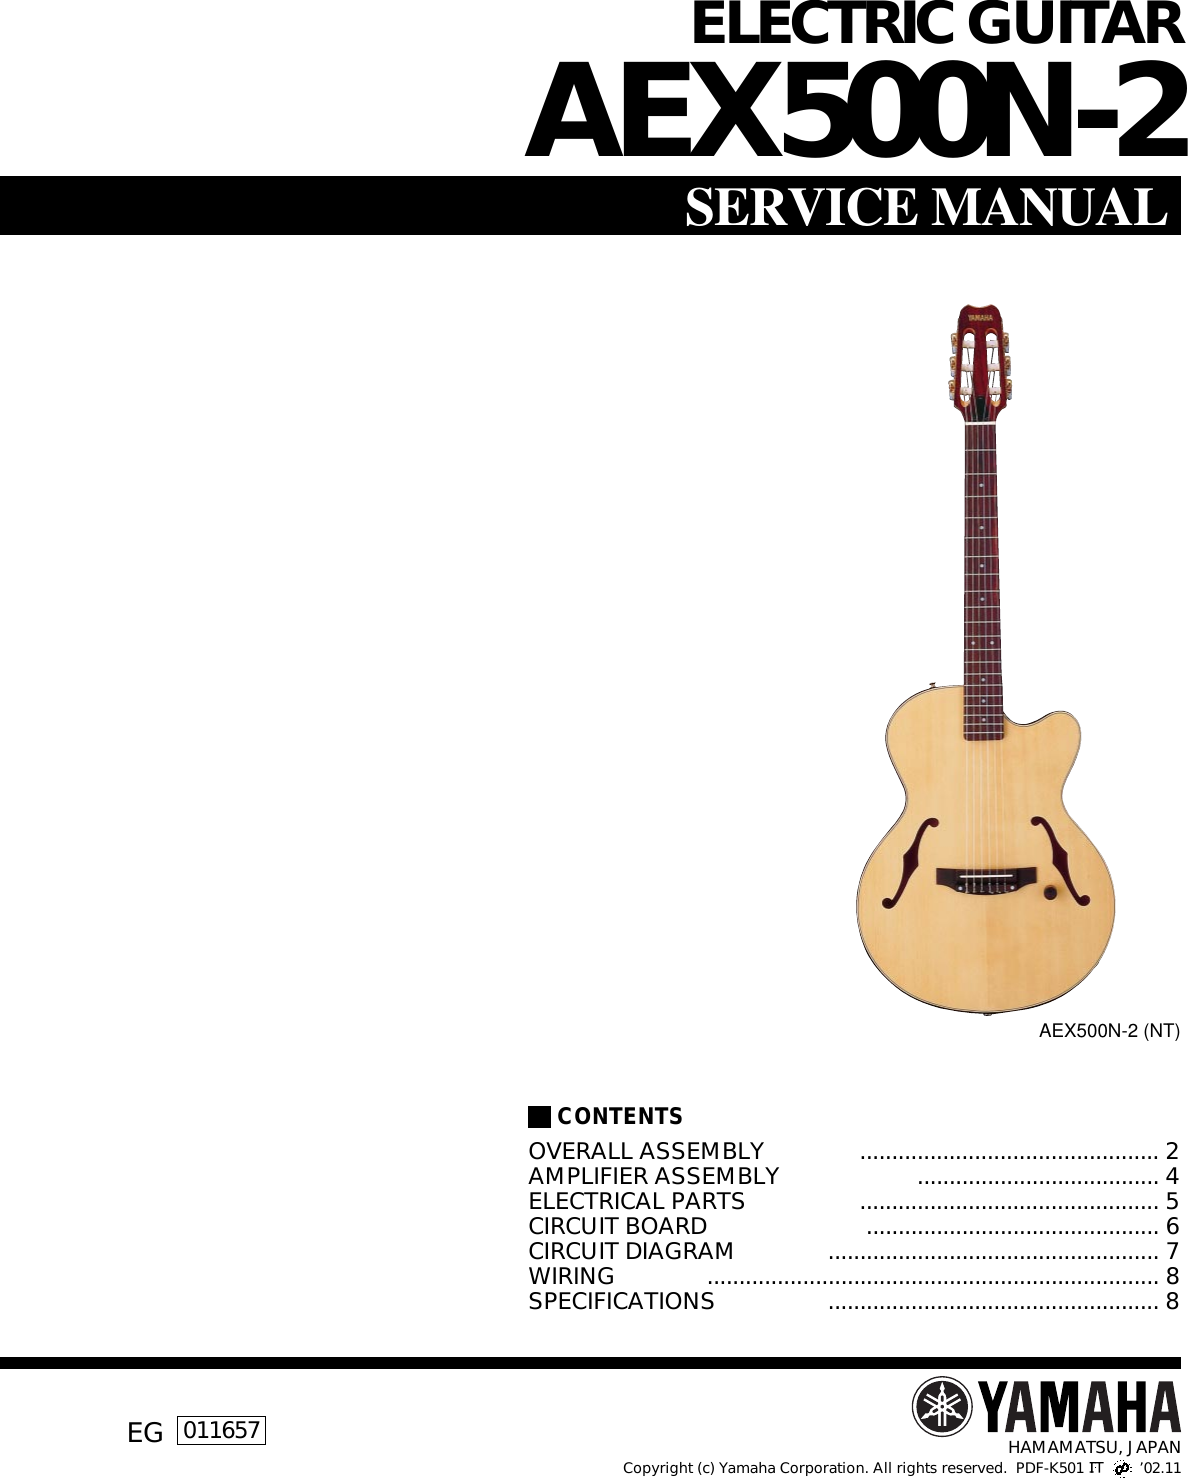 Yamaha Guitar Aex500n 2 Users Manual Electric Strings Diagram